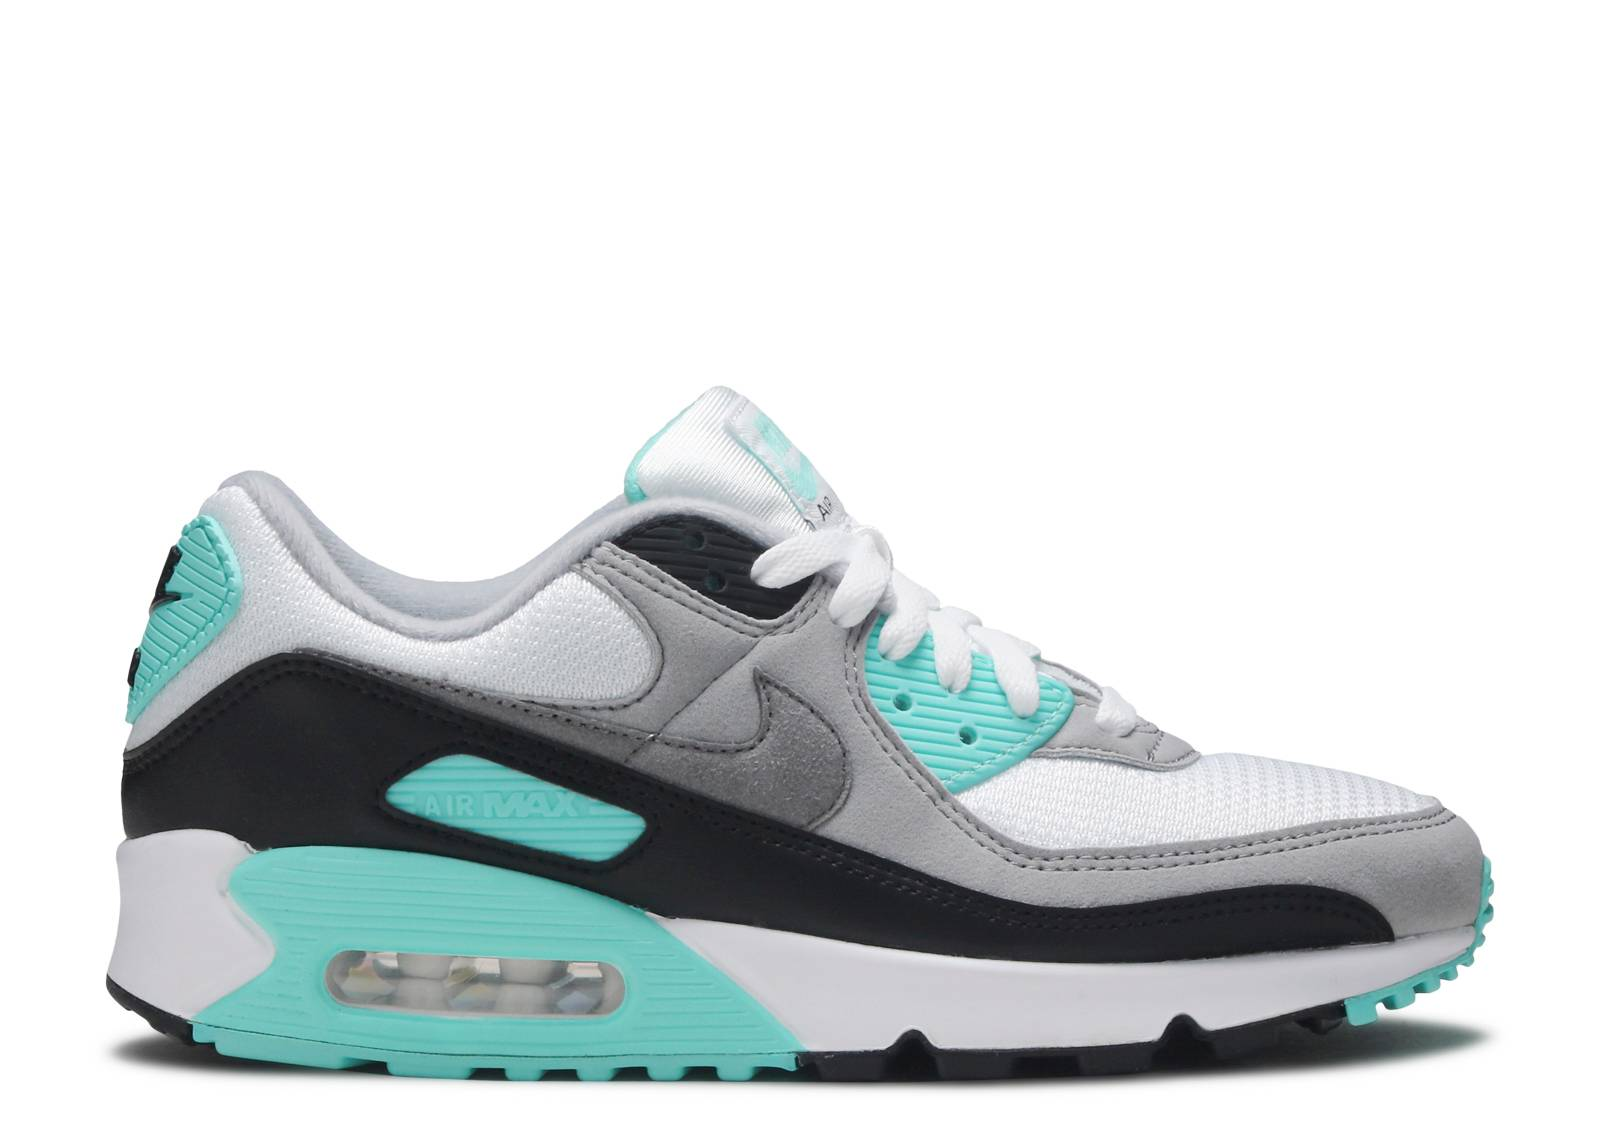 Wmns Air Max 90 'Turquoise'